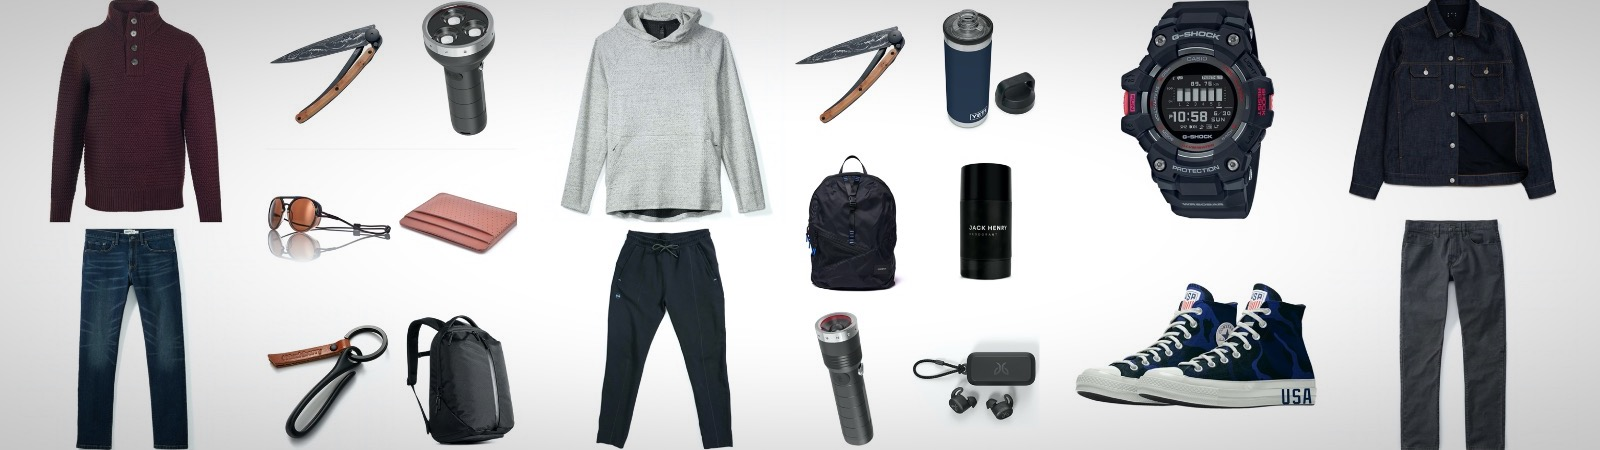 50 'Things We Want' This Week: Best Buttondowns, Sweaters, And Sneakers For Fall